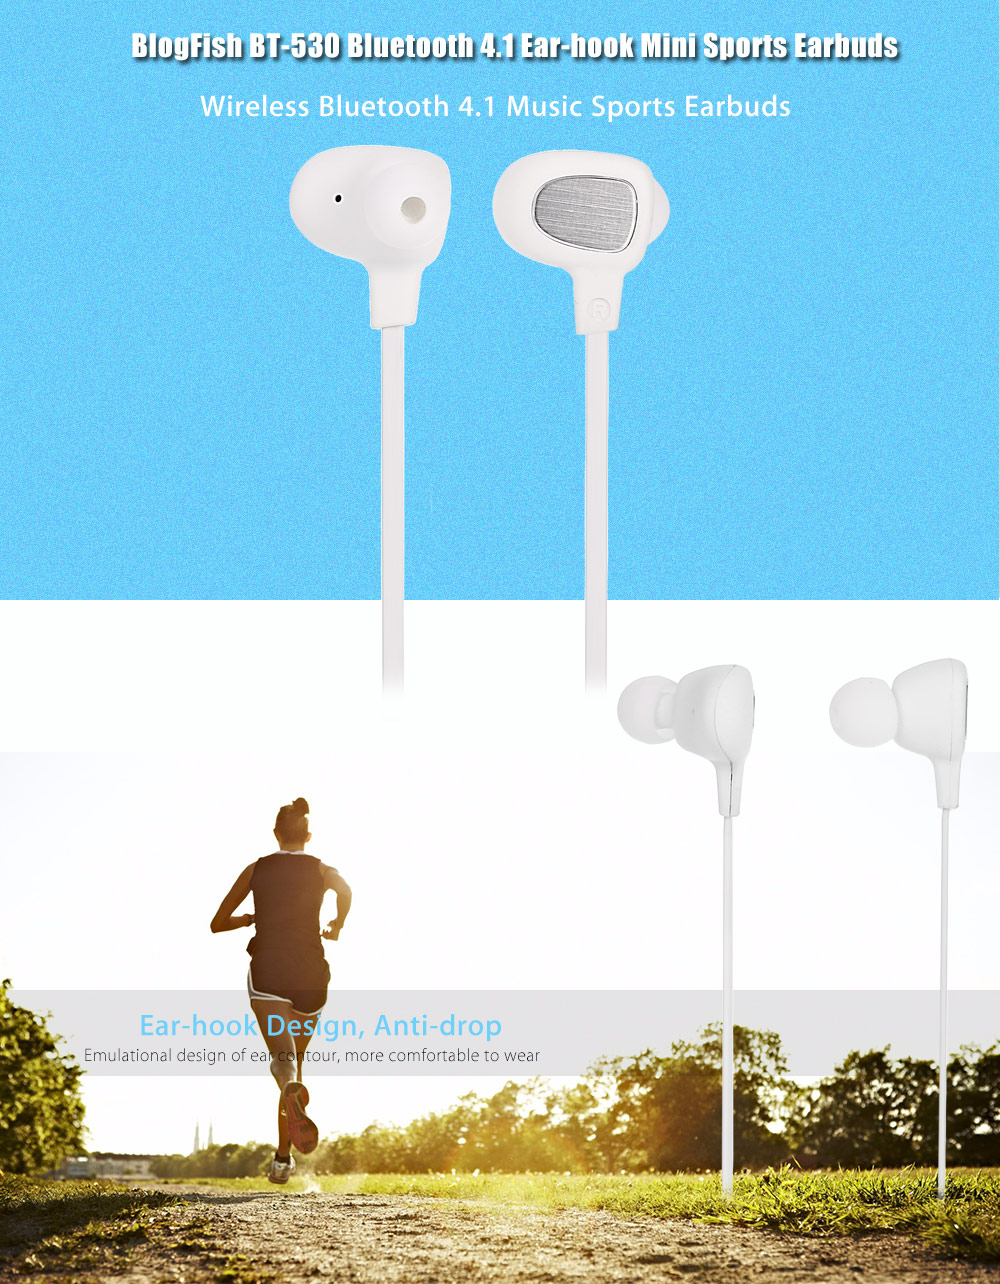 Original BlogFish BT-530 Bluetooth 4.1Ear-hook Mini Sports Earbuds with Volume Control Song Switch